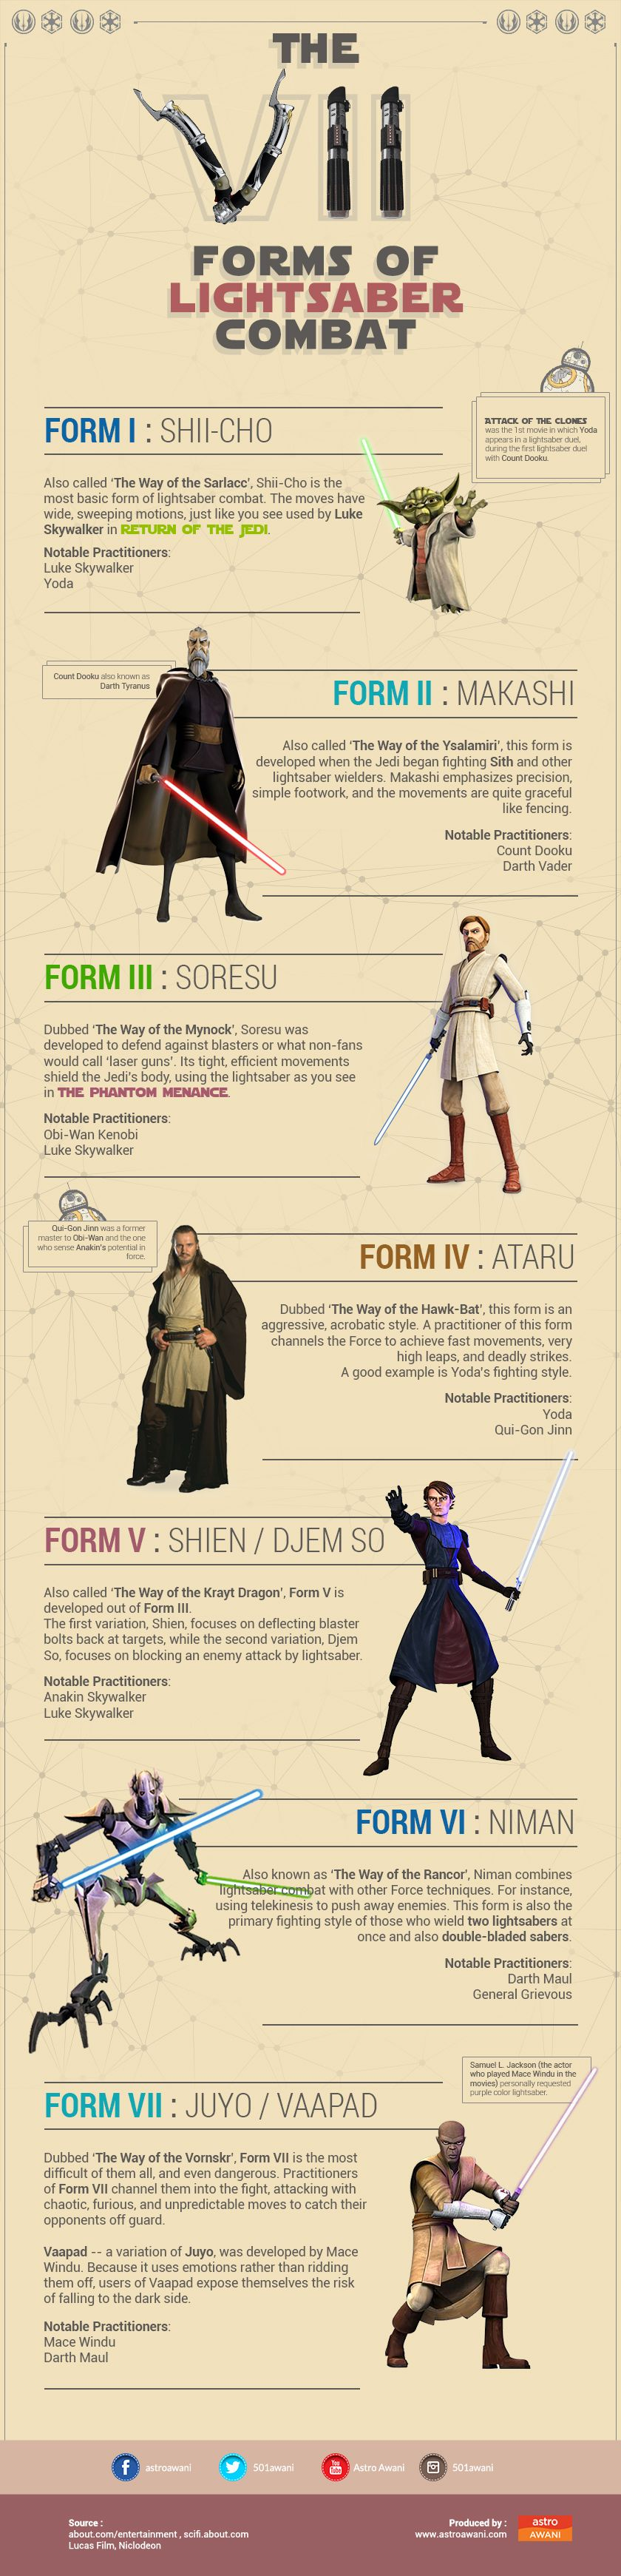 Best 25+ Lightsaber fighting styles ideas on Pinterest ...